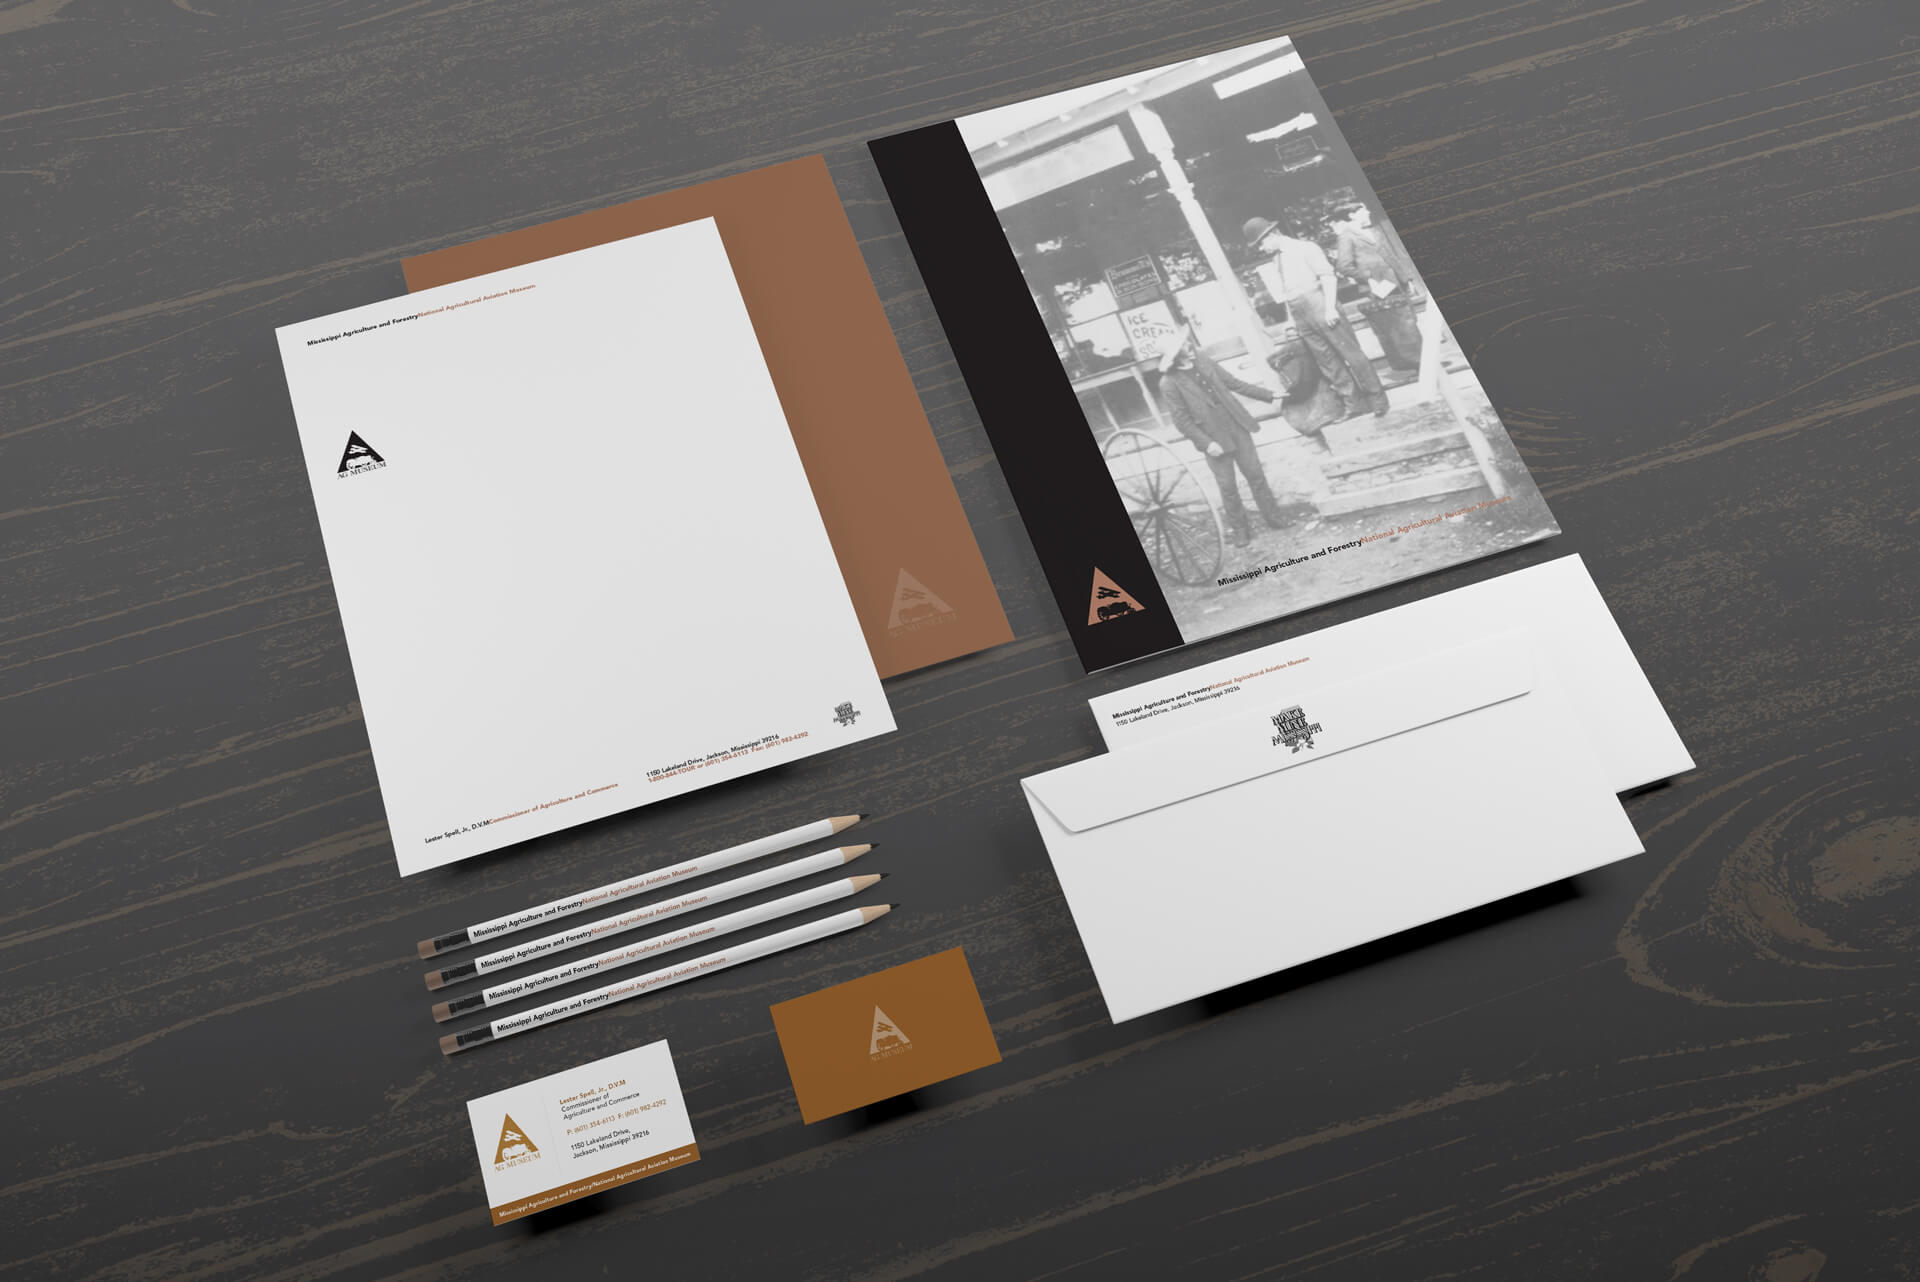 Agriculture and Aviation Museum Branding